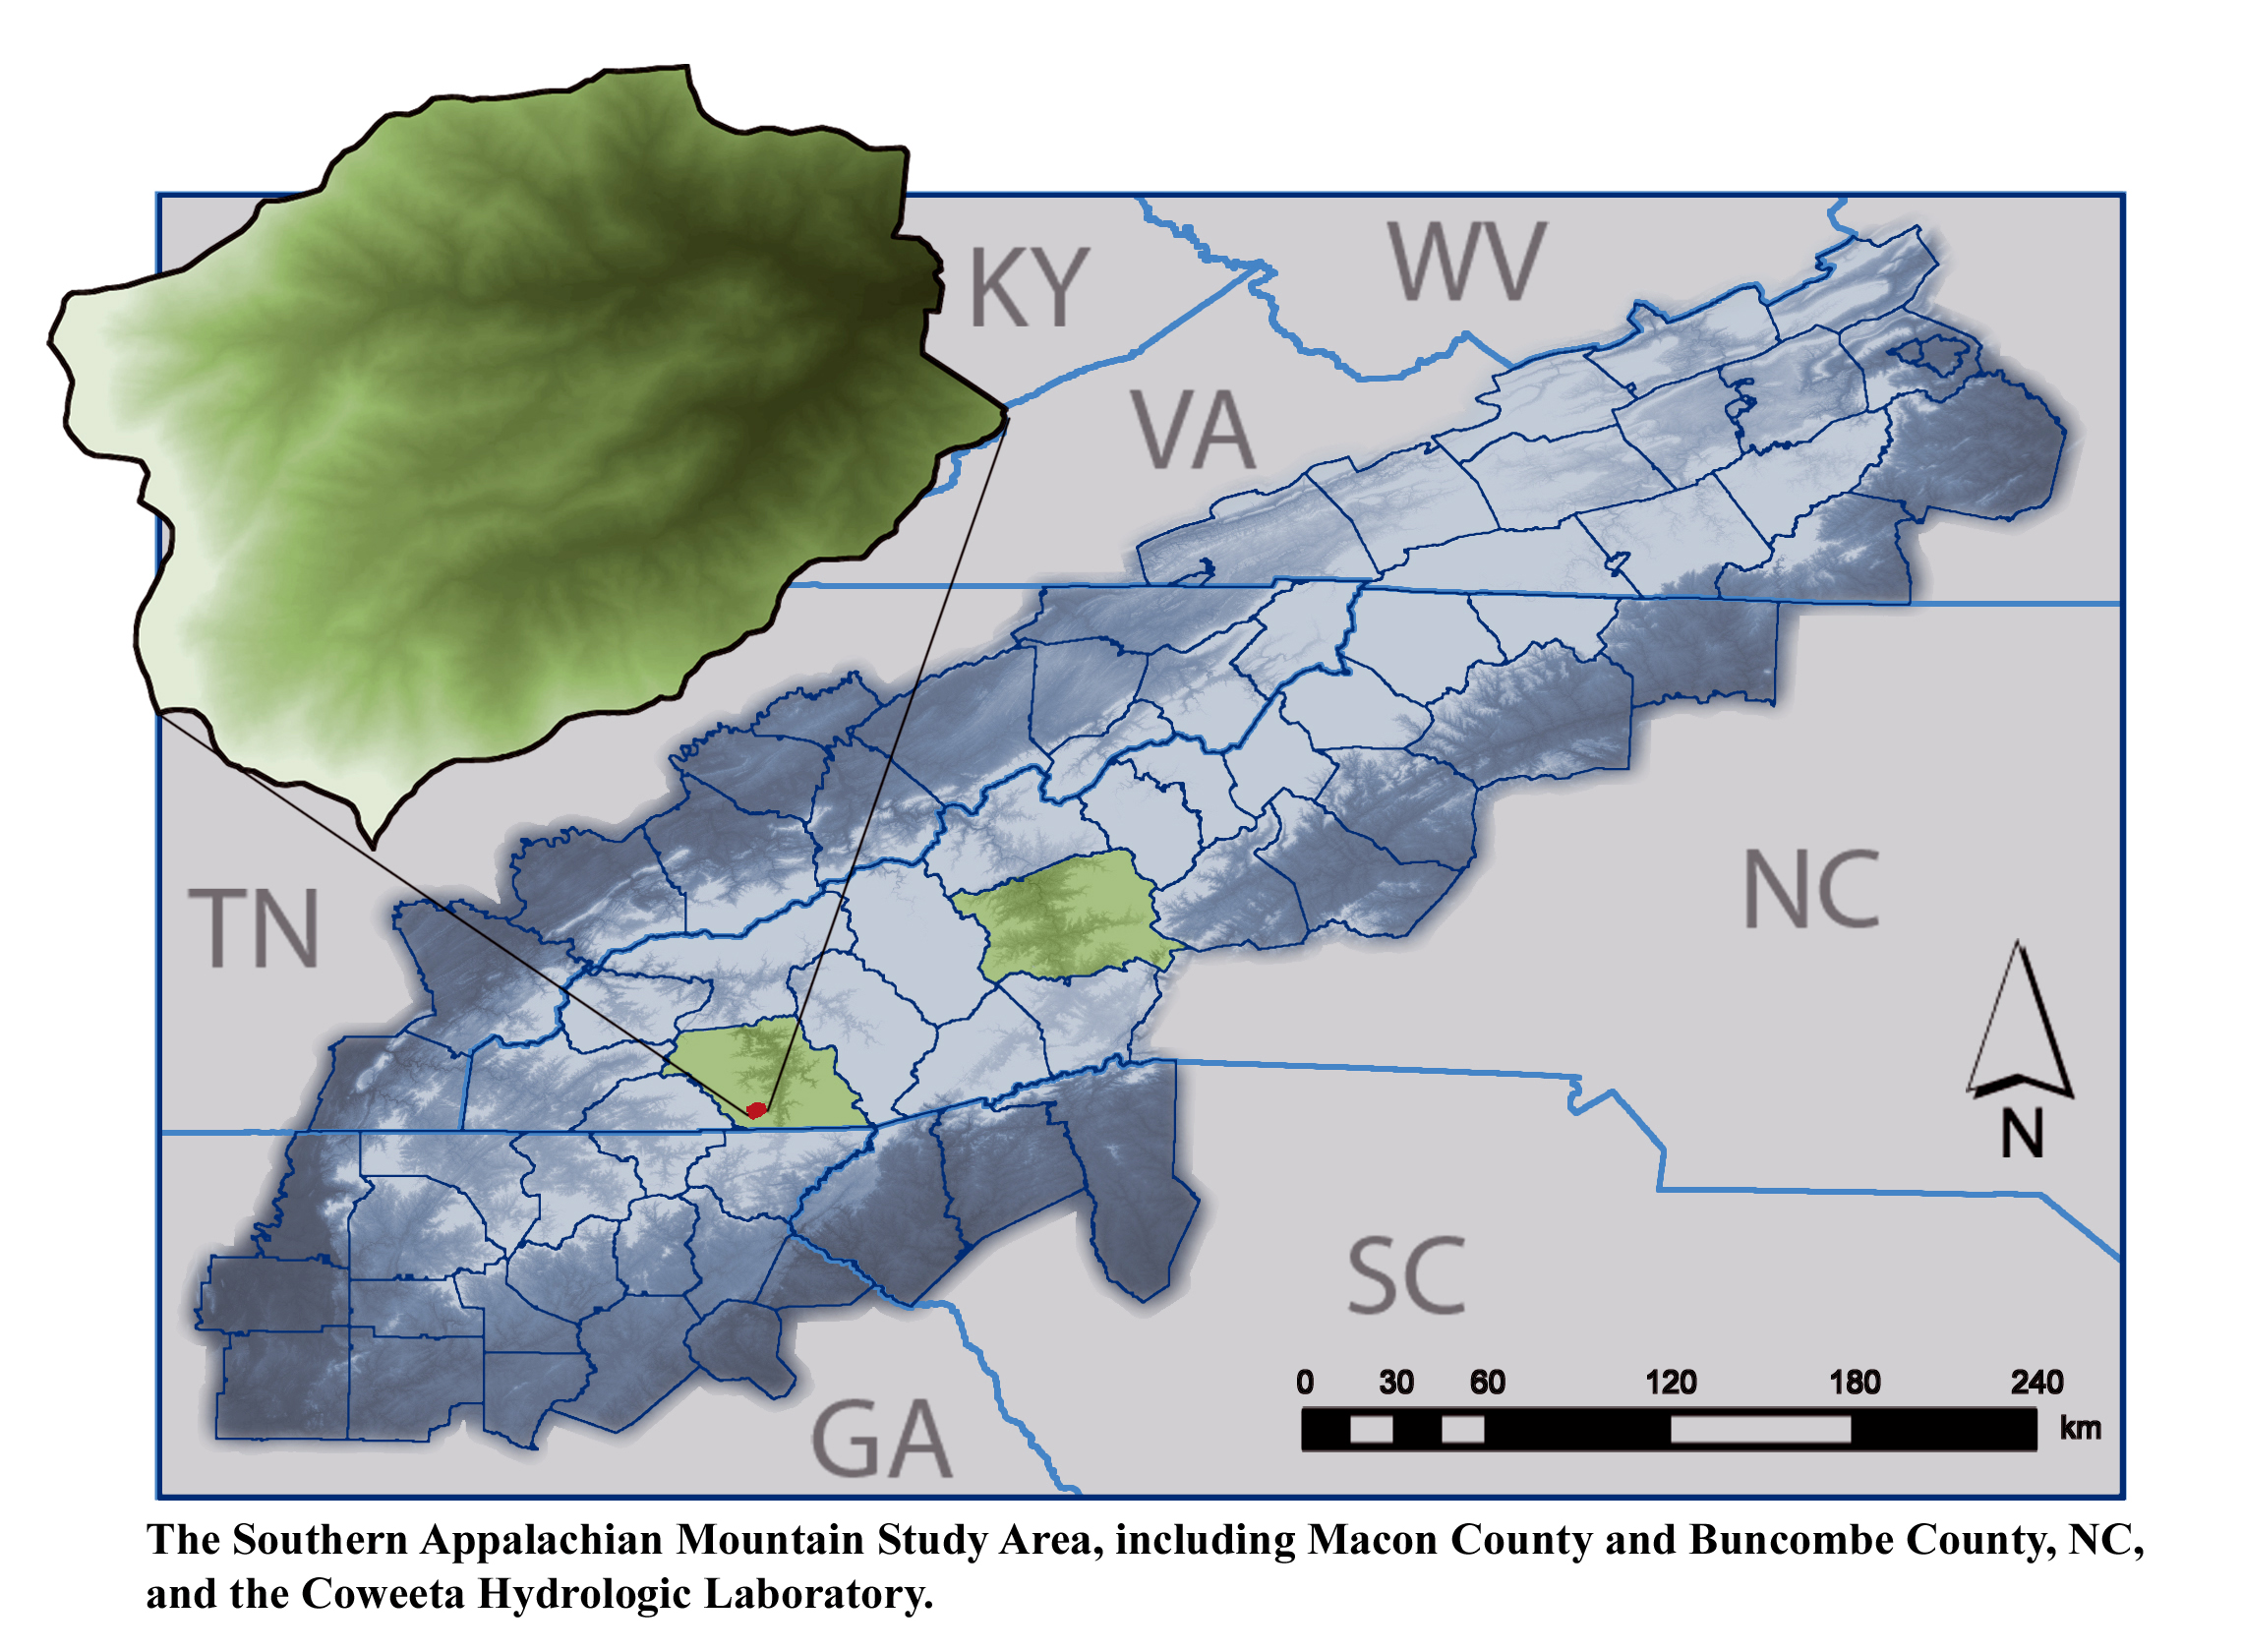 Location of the Coweeta Hydrologic Laboratory and Southern Appalachian Study Area